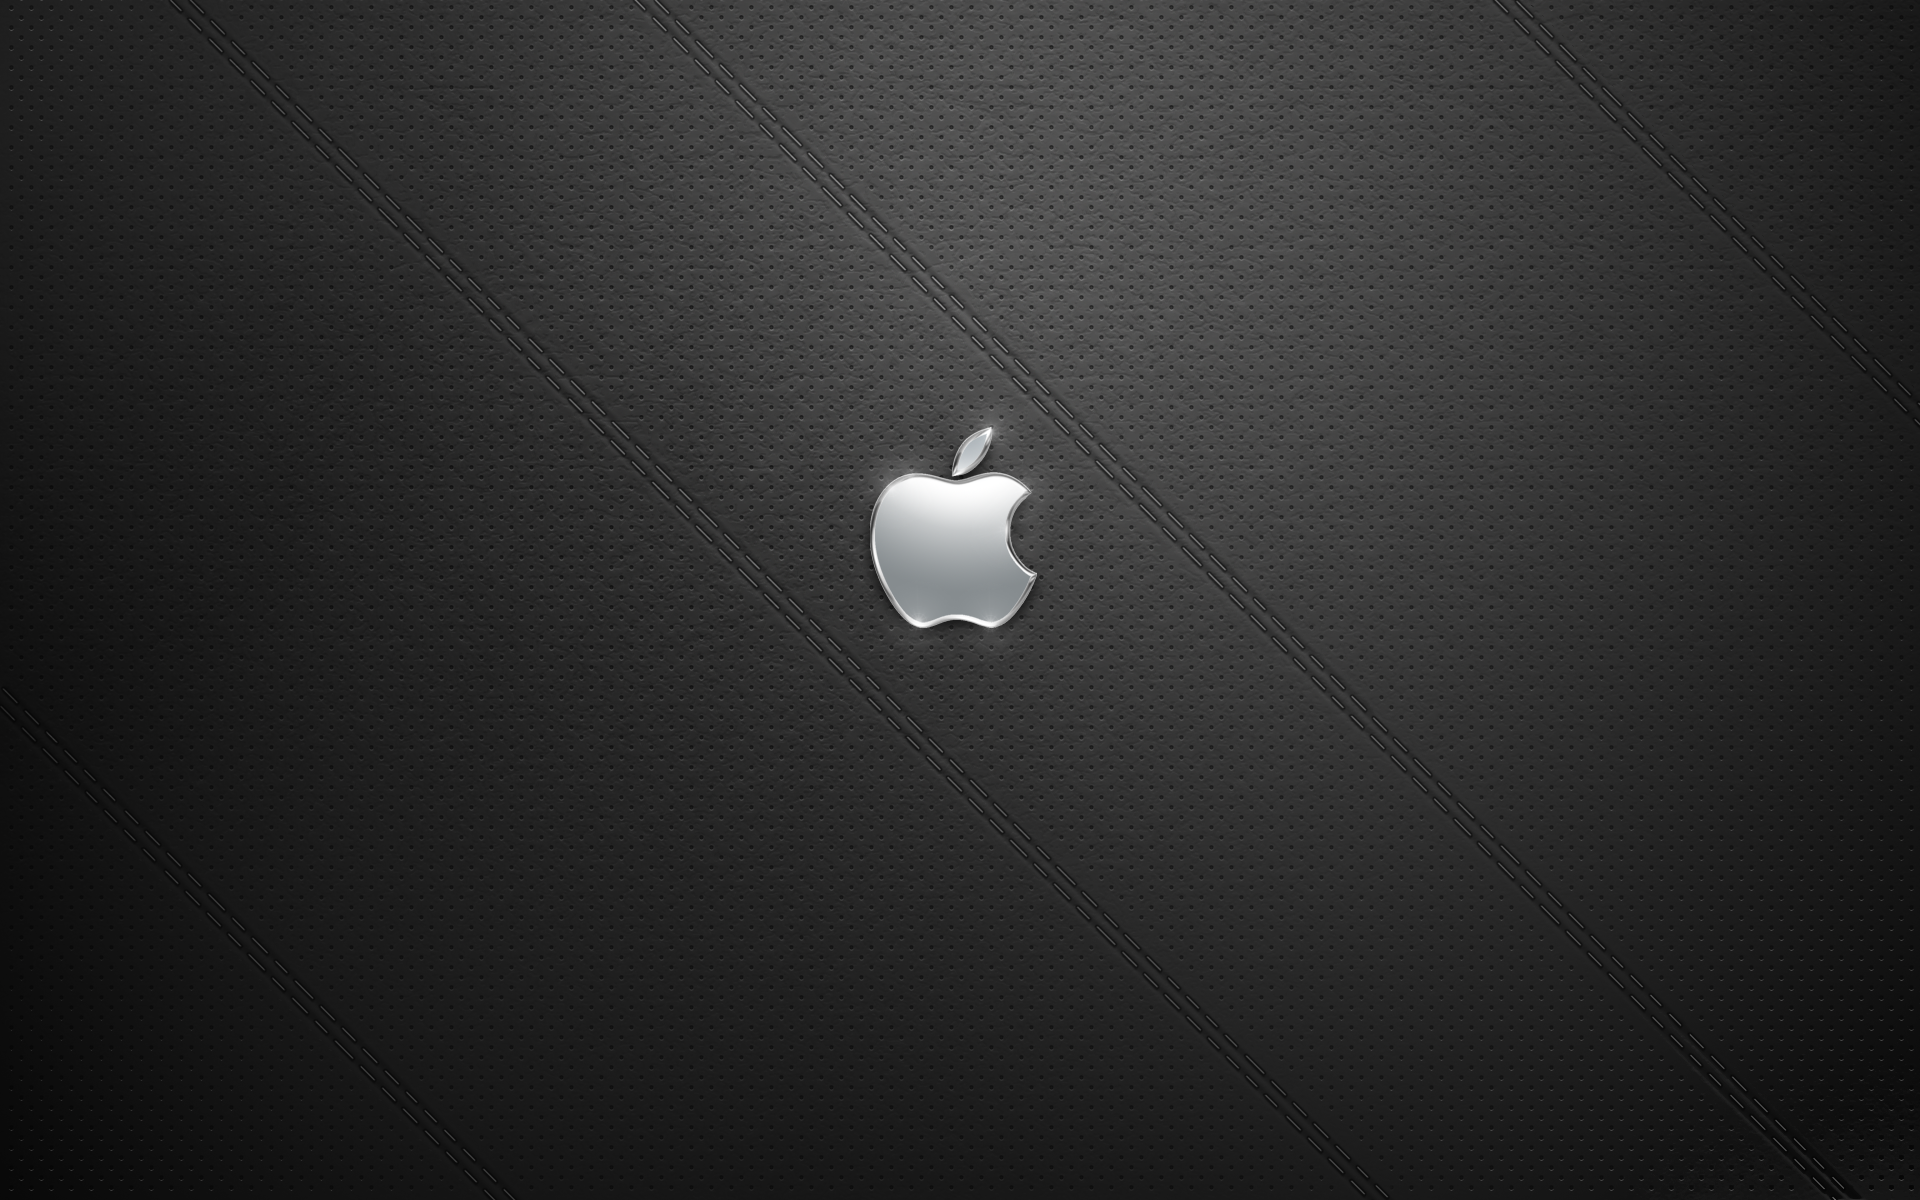 Free Mac Wallpapers for Minimalists | Best Design Options